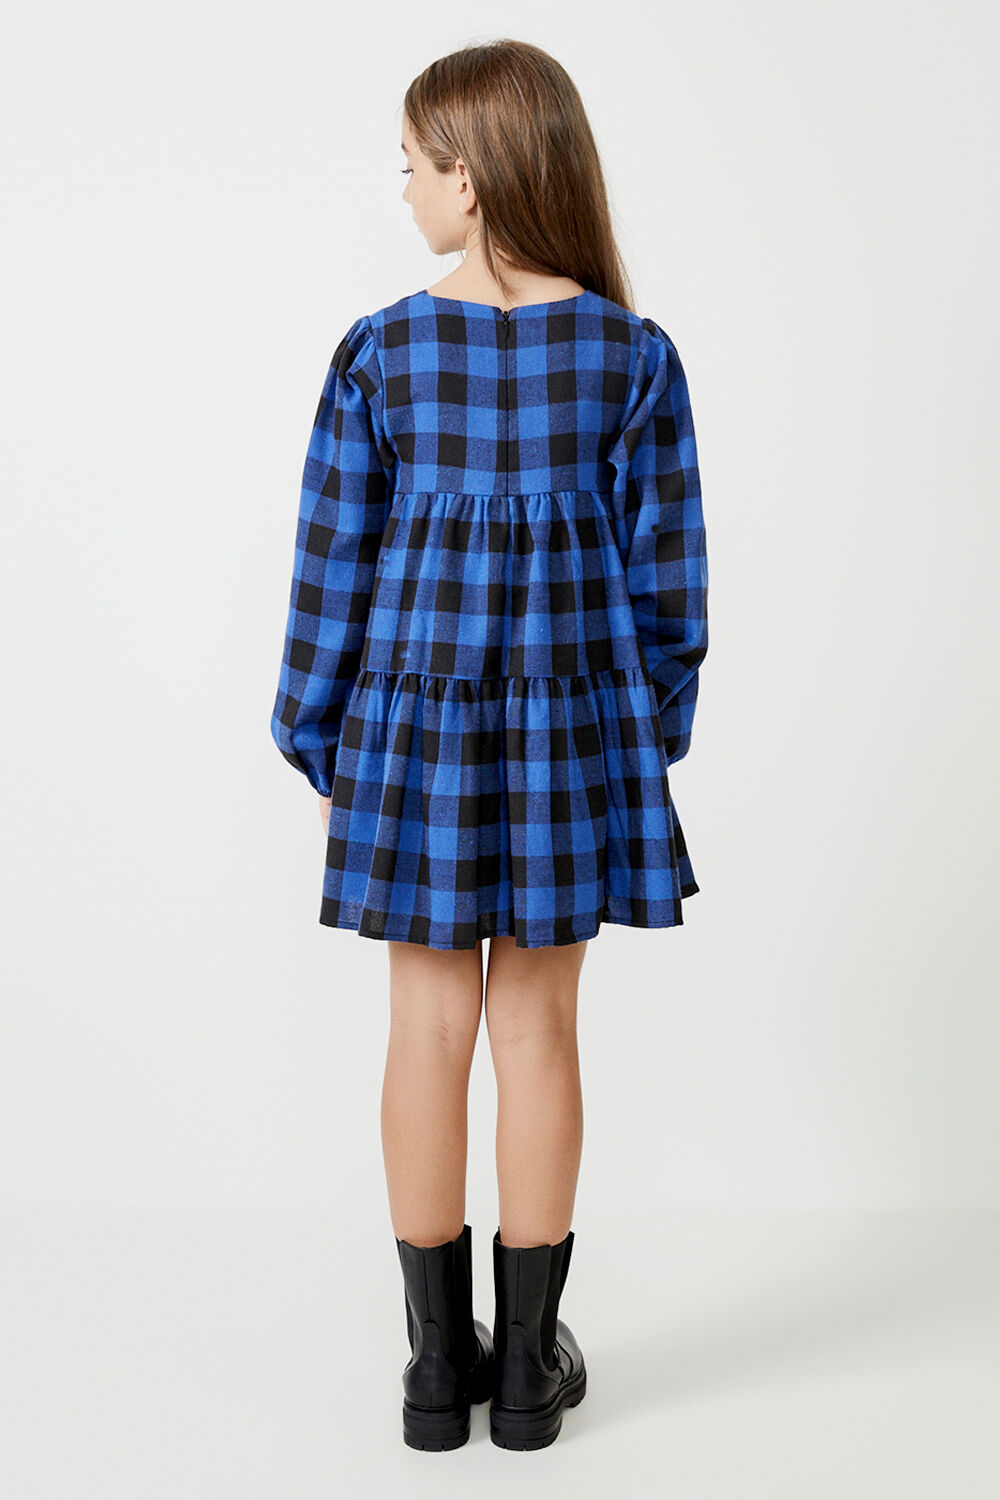 GIRLS THE TIERED CHECK DRESS  in colour ANGEL FALLS